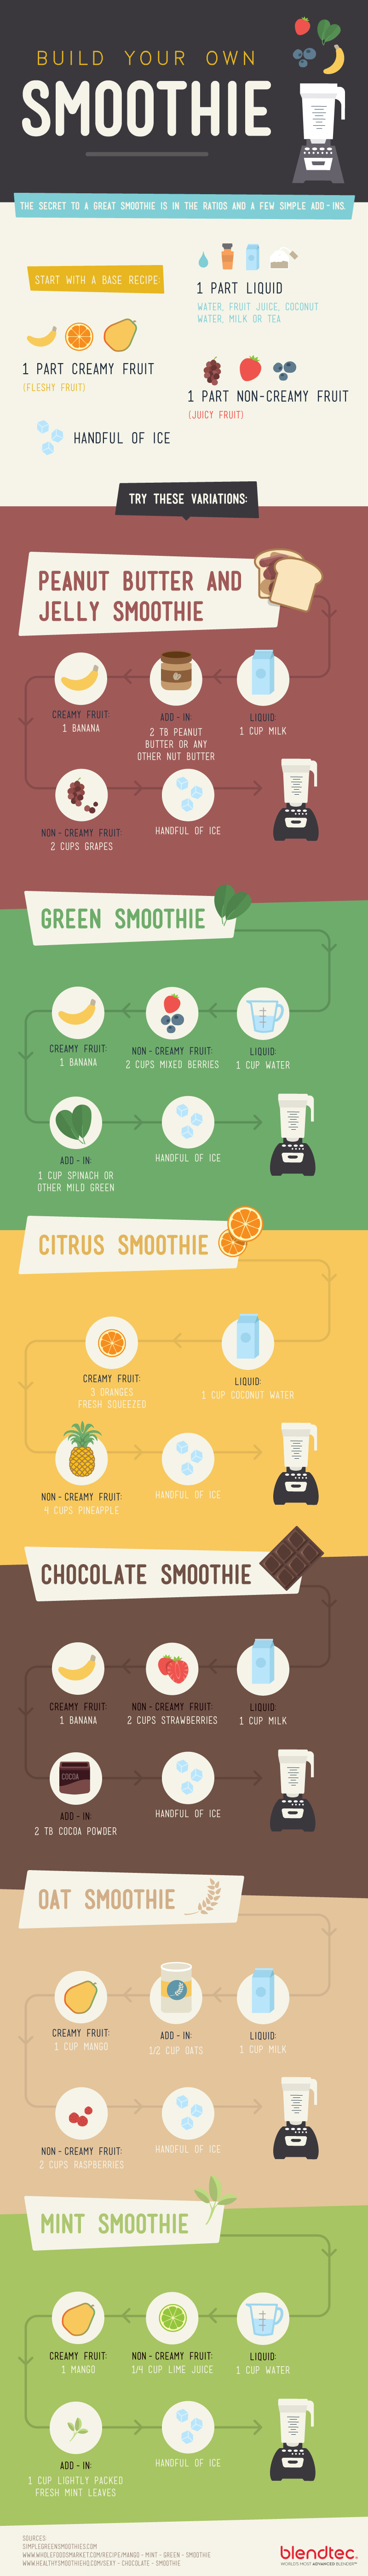 DIY Smoothie Recipes